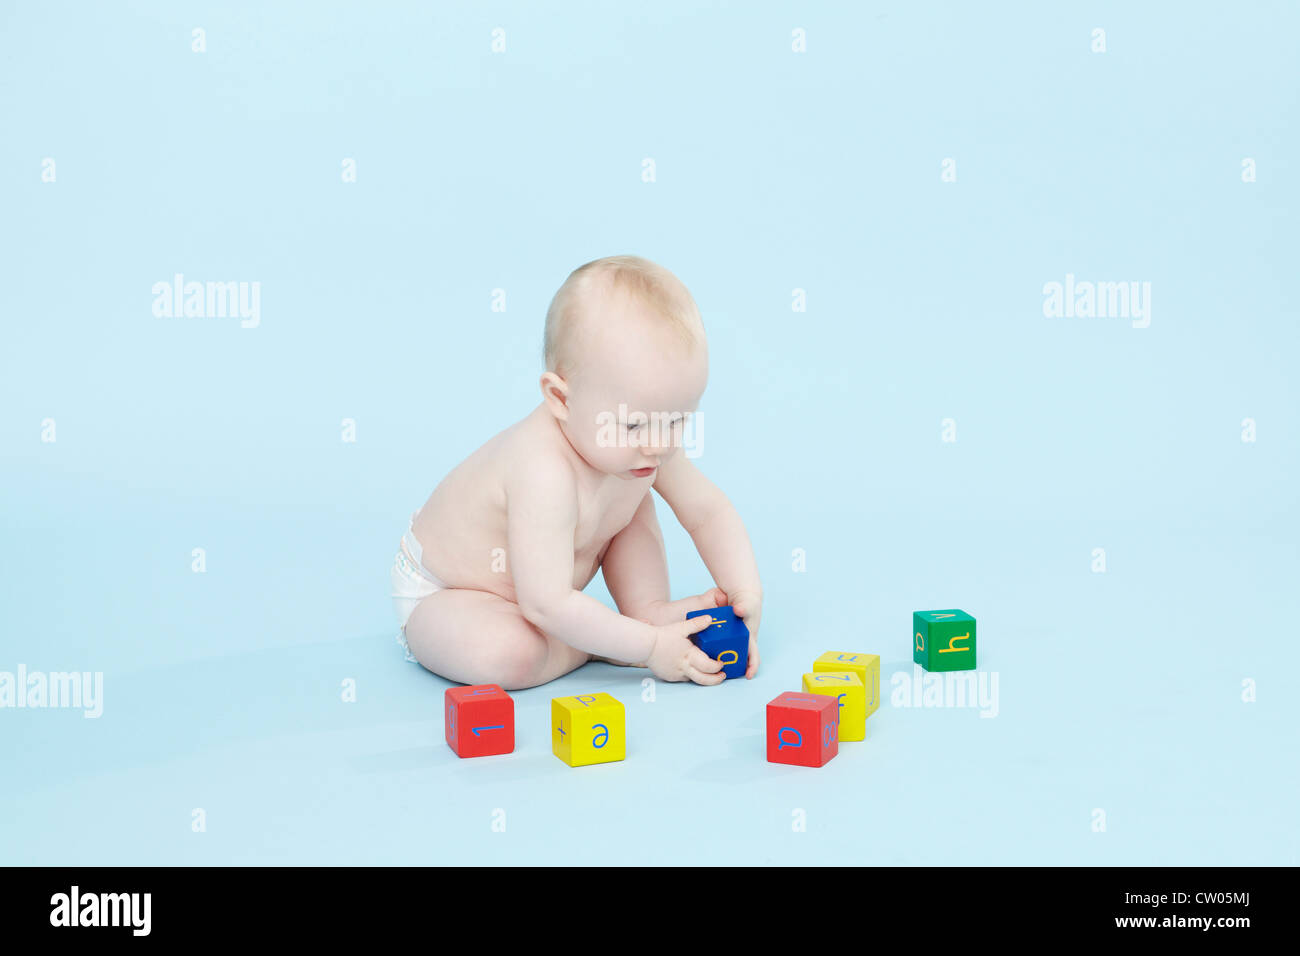 Baby boy playing with colored blocks - Stock Image